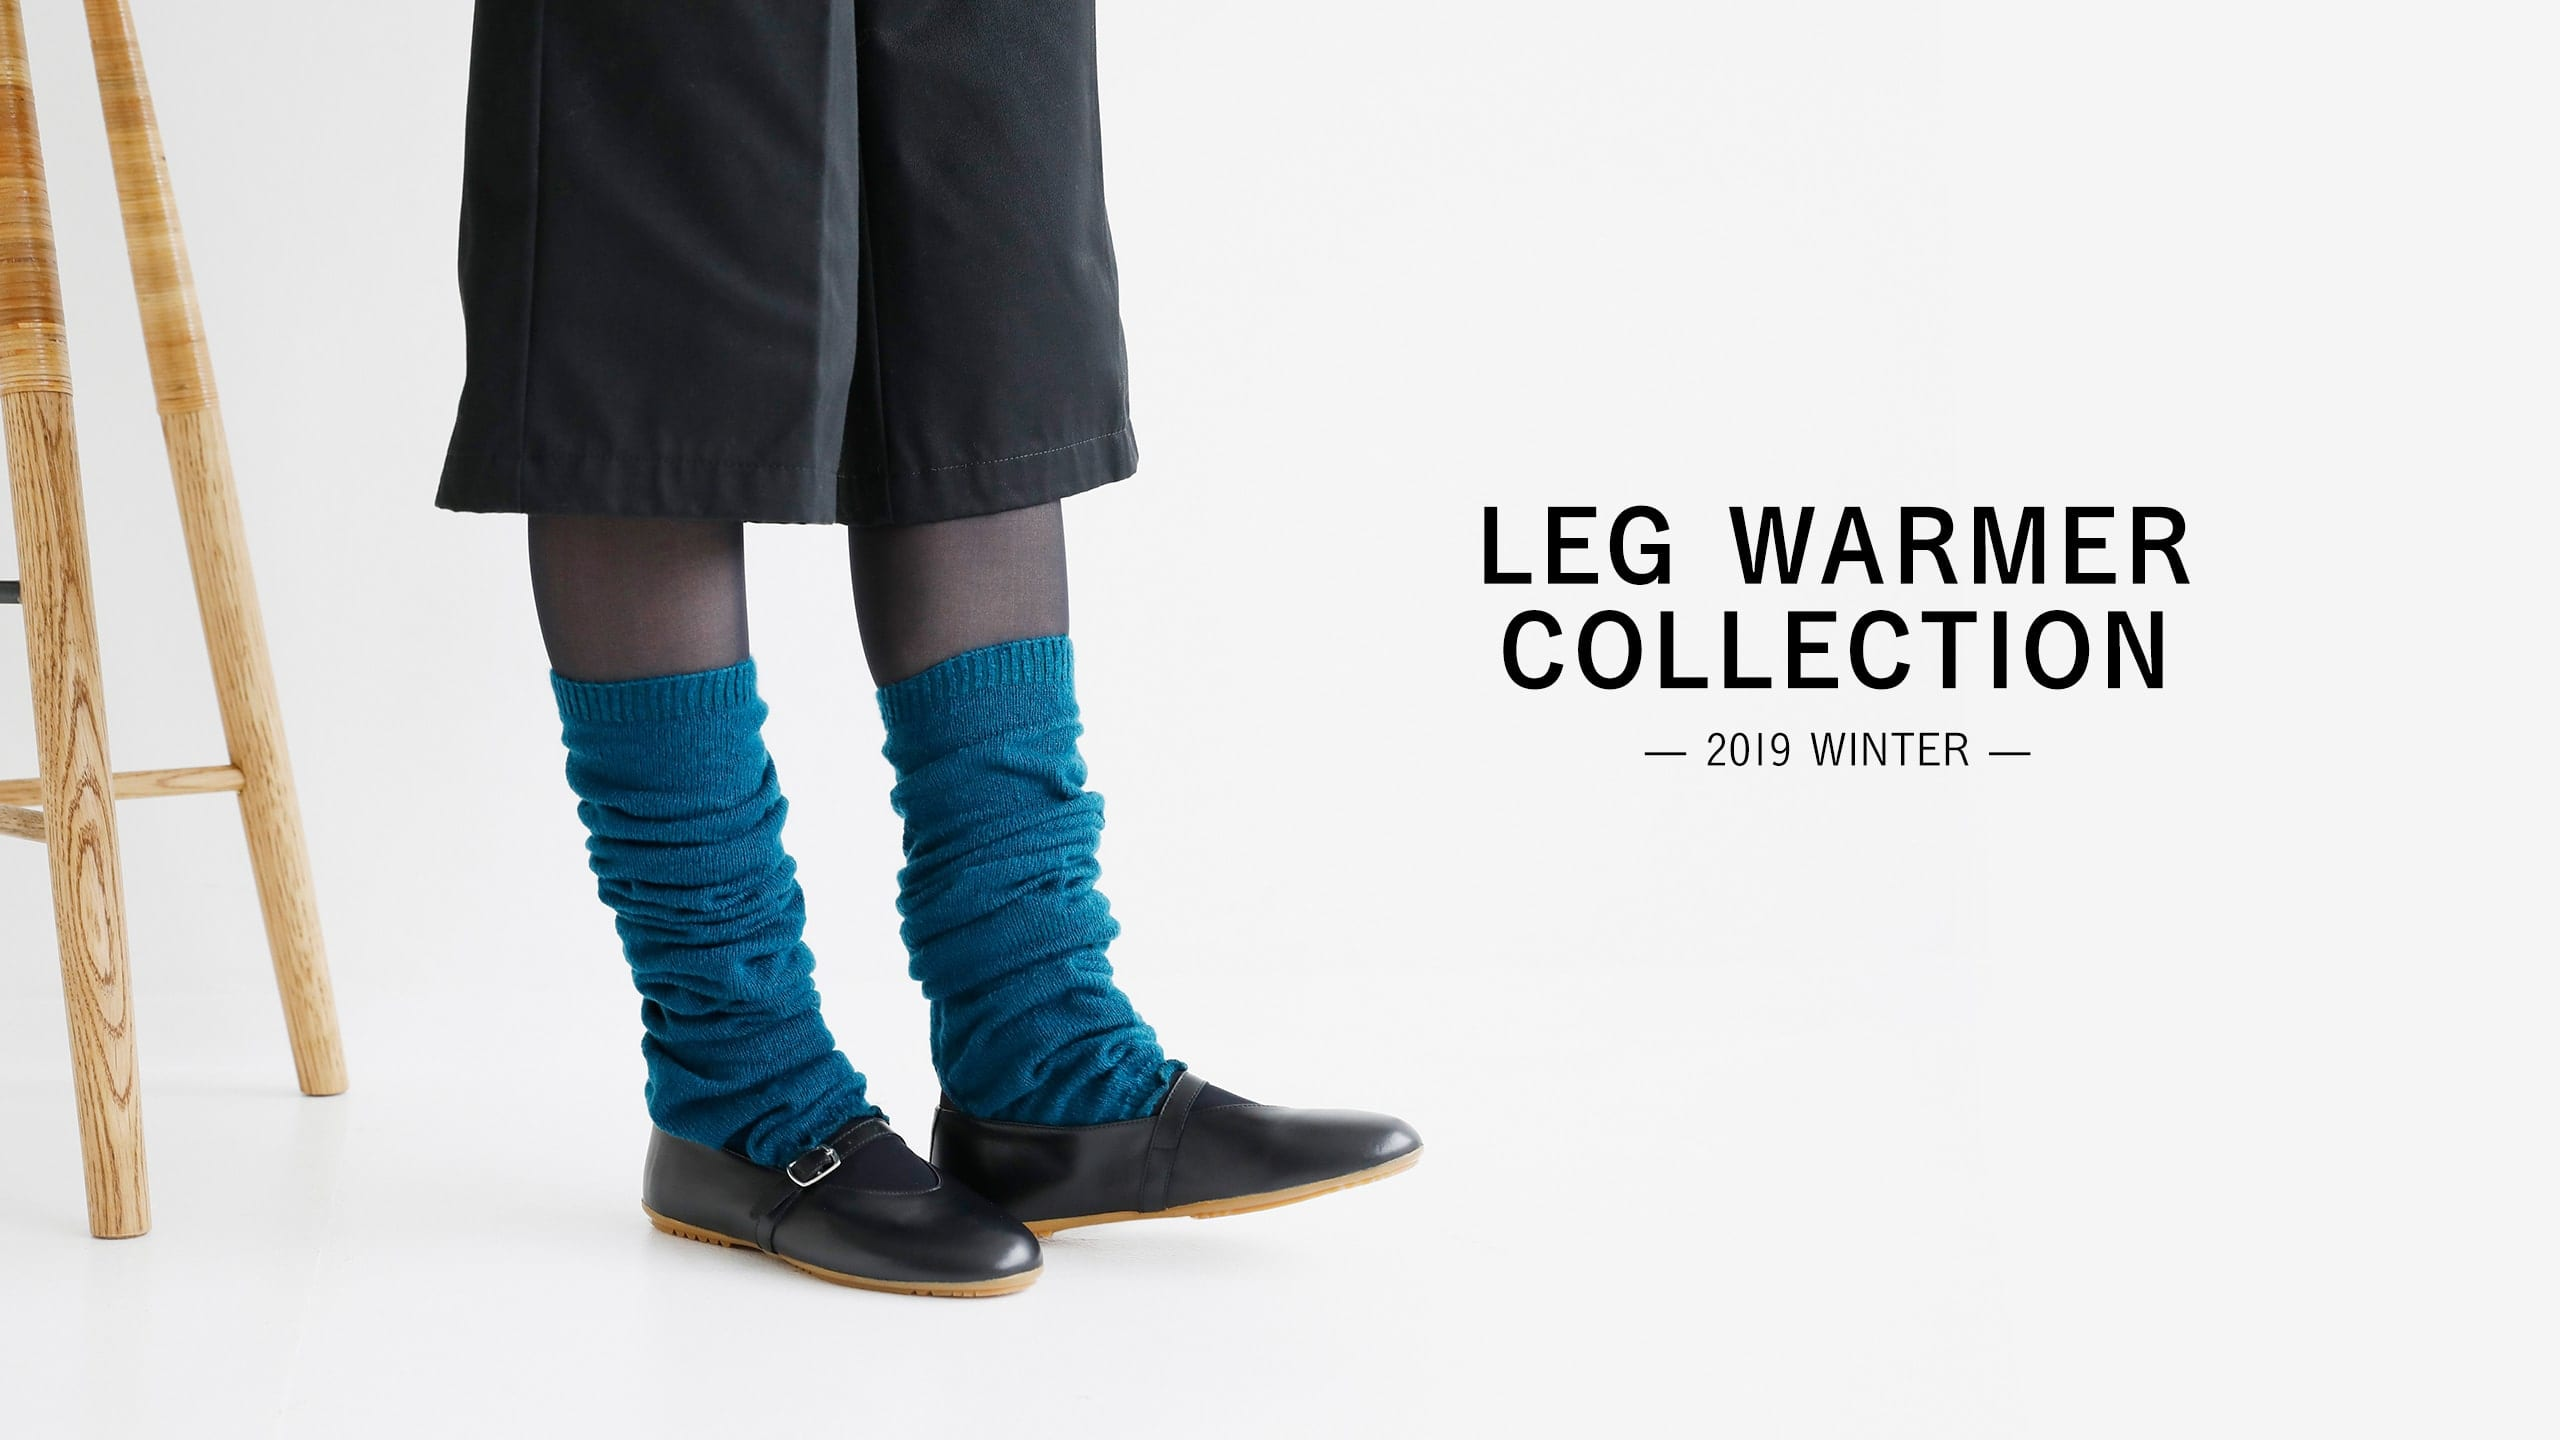 leg warmers Collection